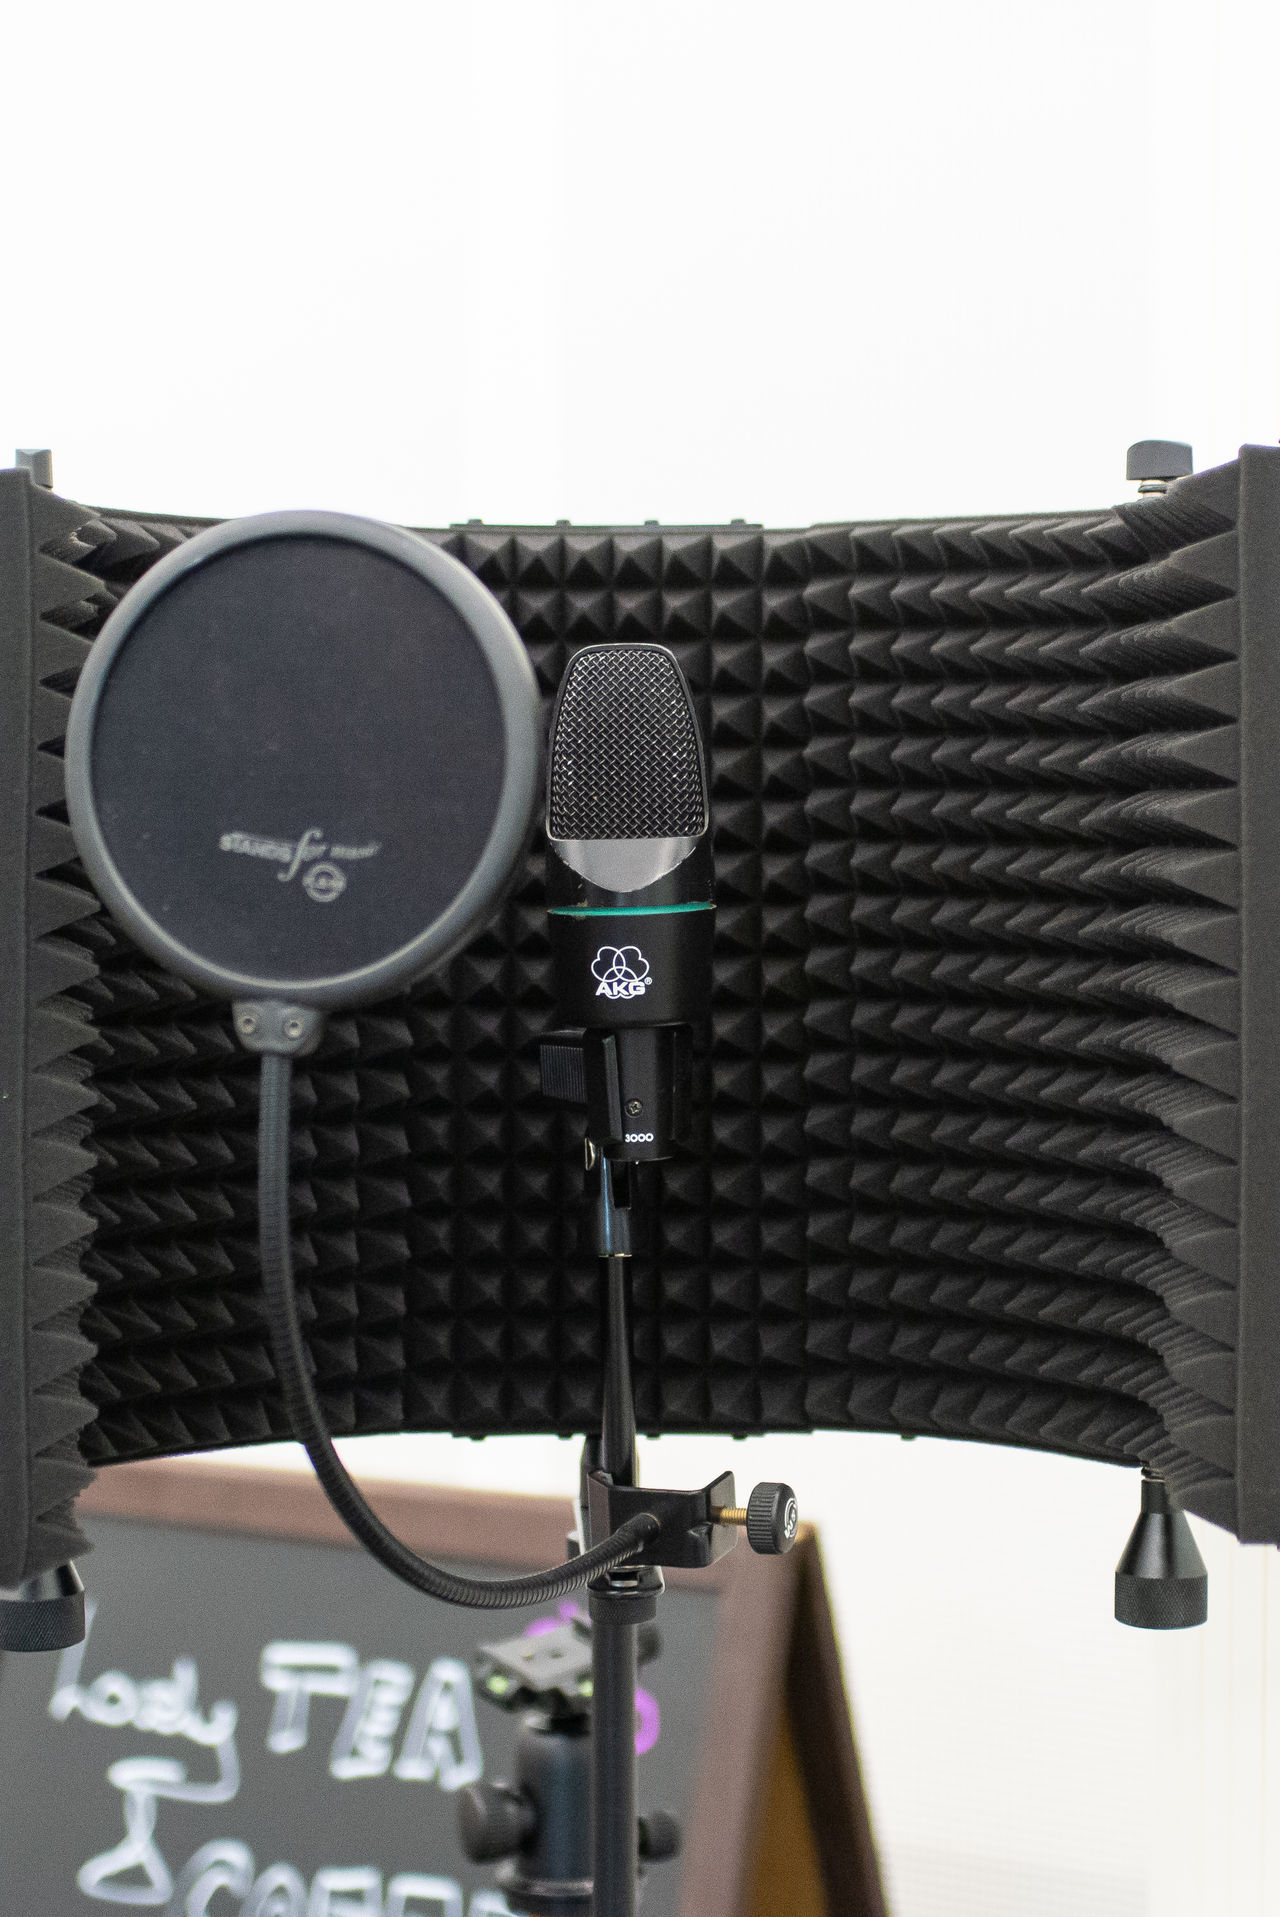 A microphone setup with a small sound dampener around it.